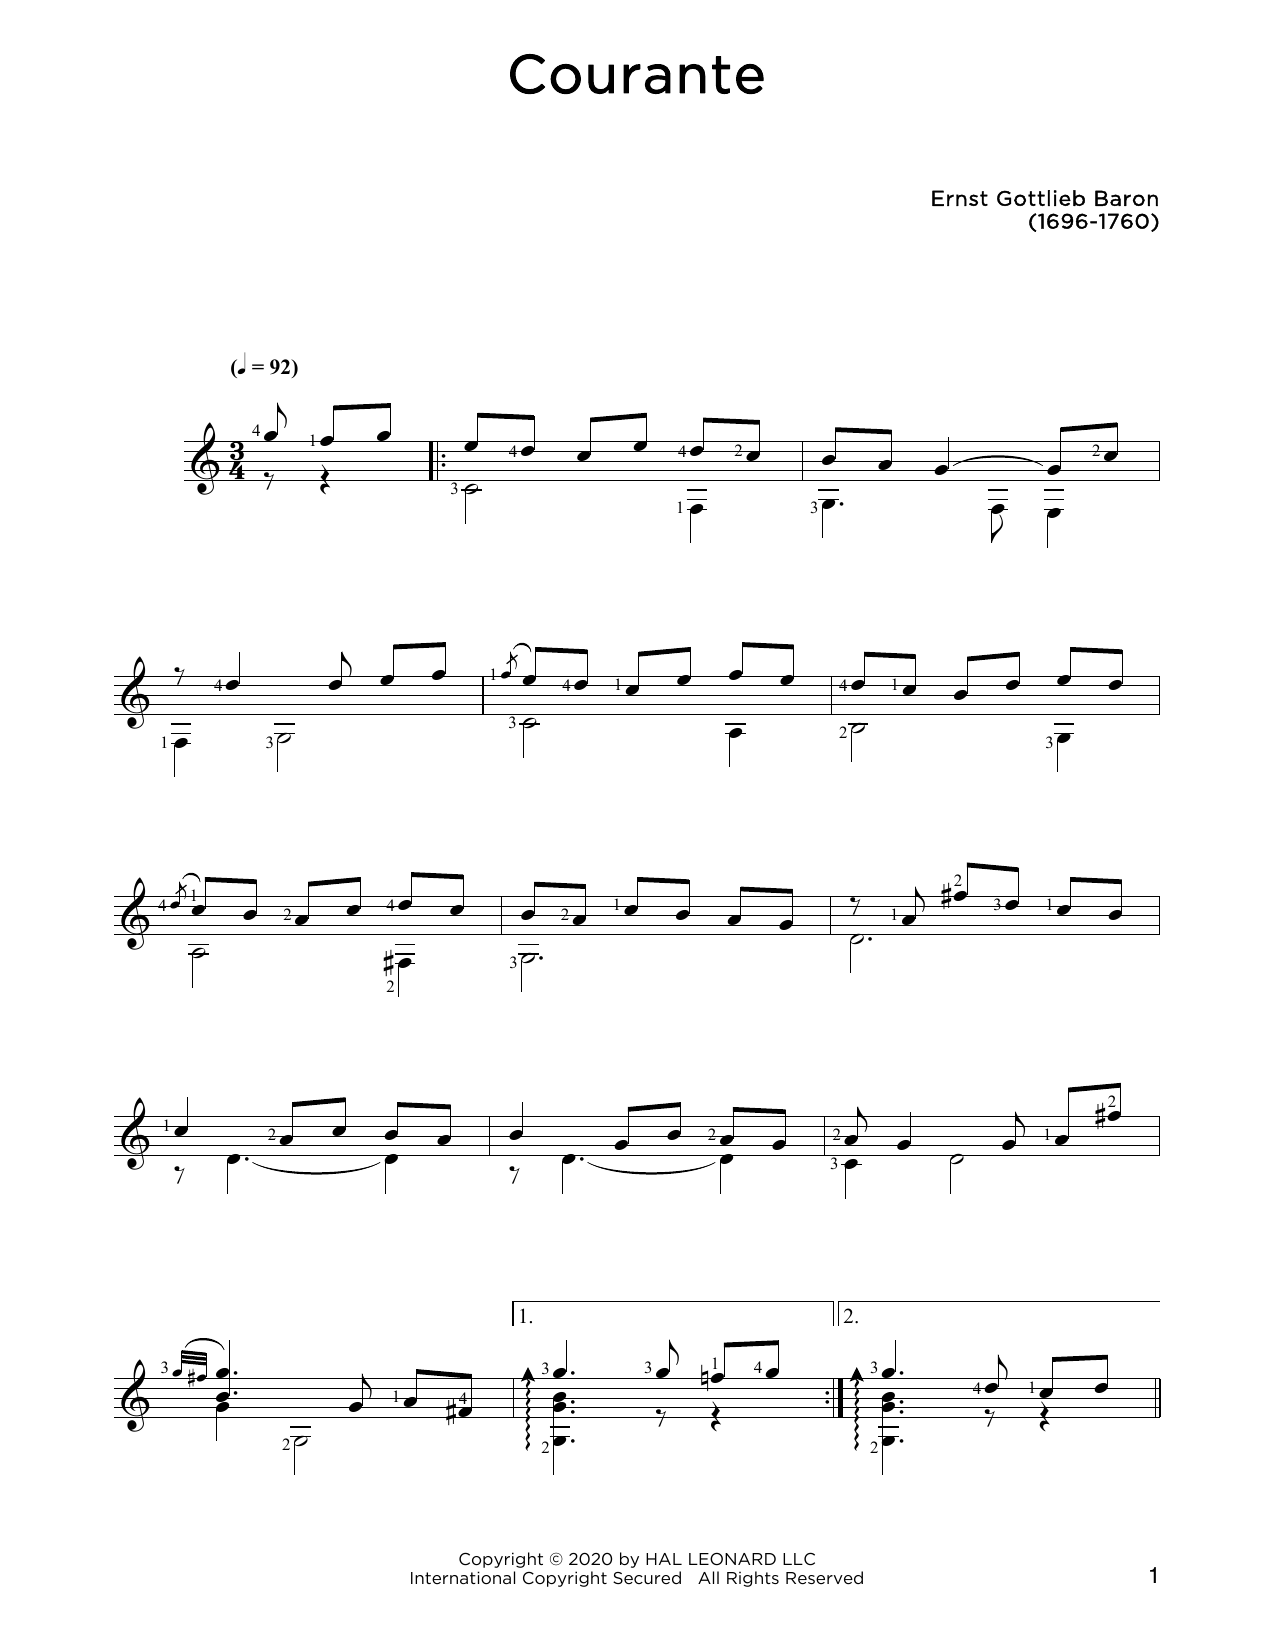 Ernst Gottlieb Baron Courante sheet music notes and chords. Download Printable PDF.